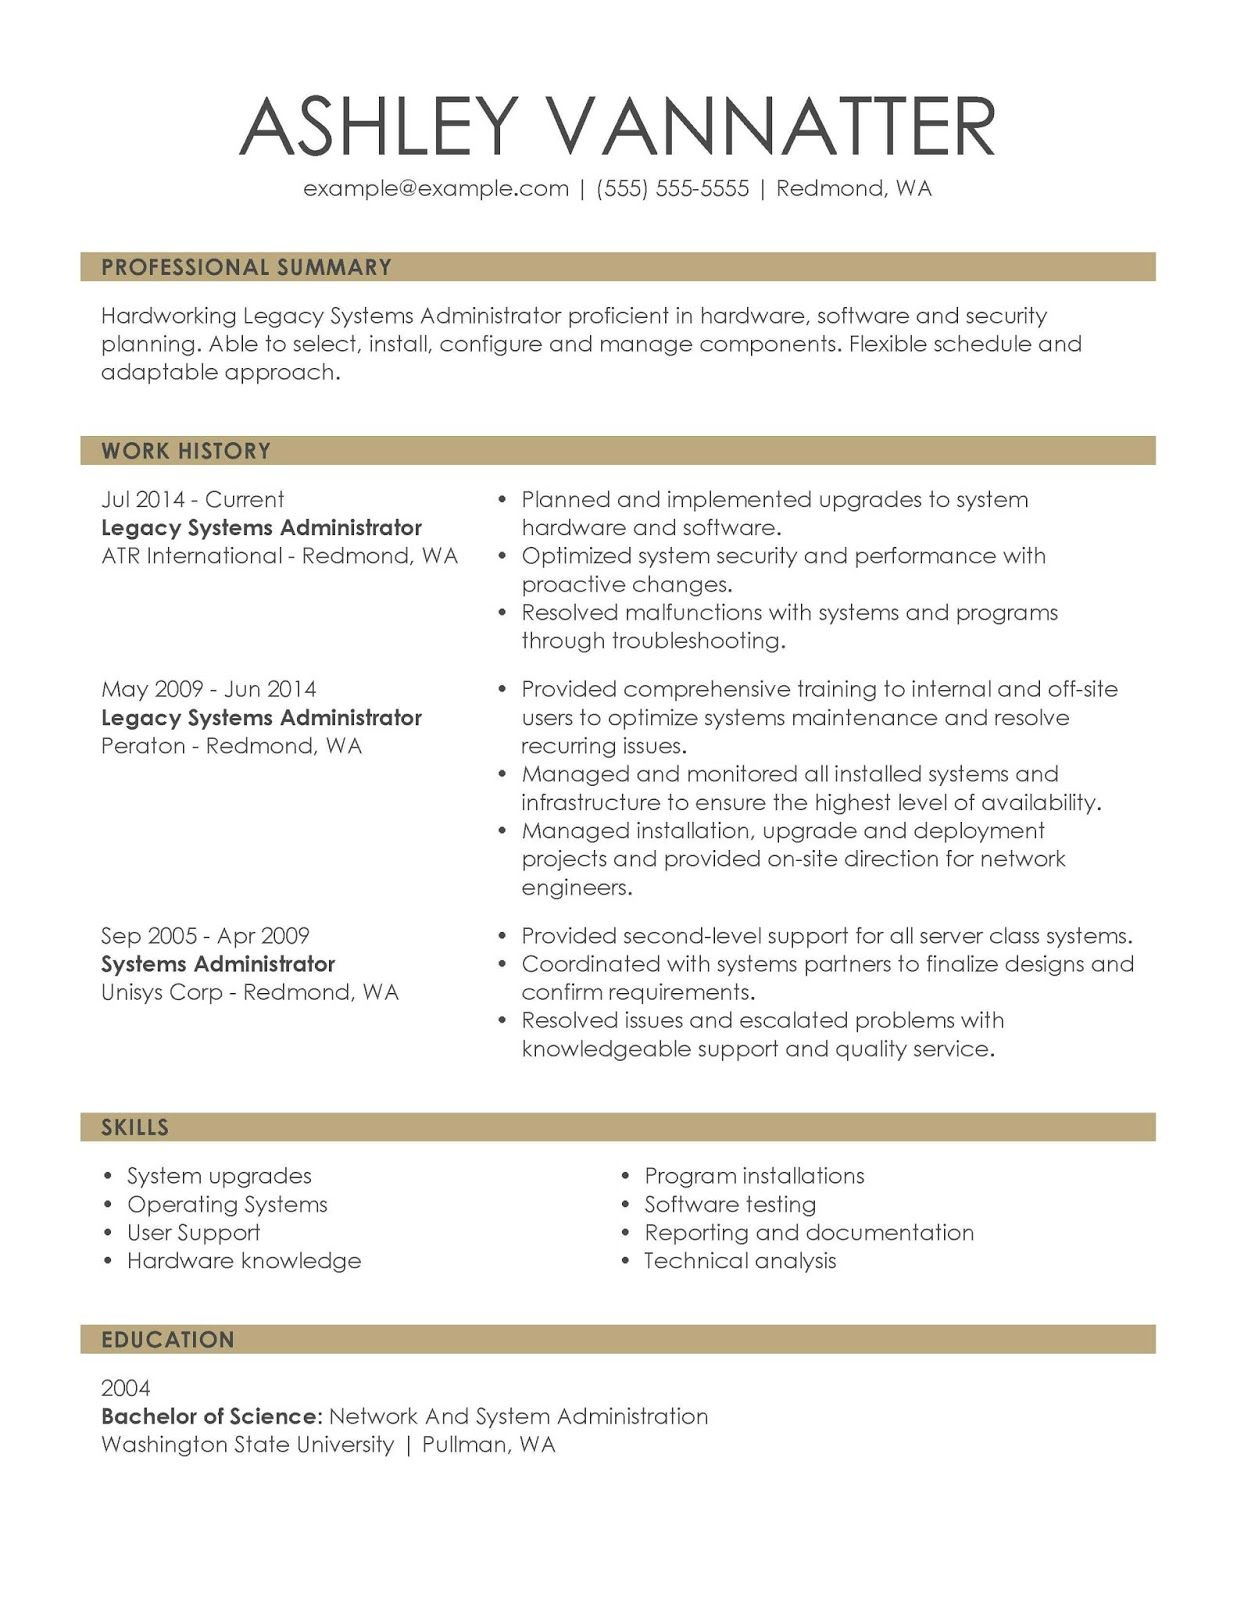 Simple Resumes Examples Examples Of Basic Resumes For Jobs Basic Examples Of Resumes Simple Resume Basic Resume Examples Resume Examples Simple Resume Examples